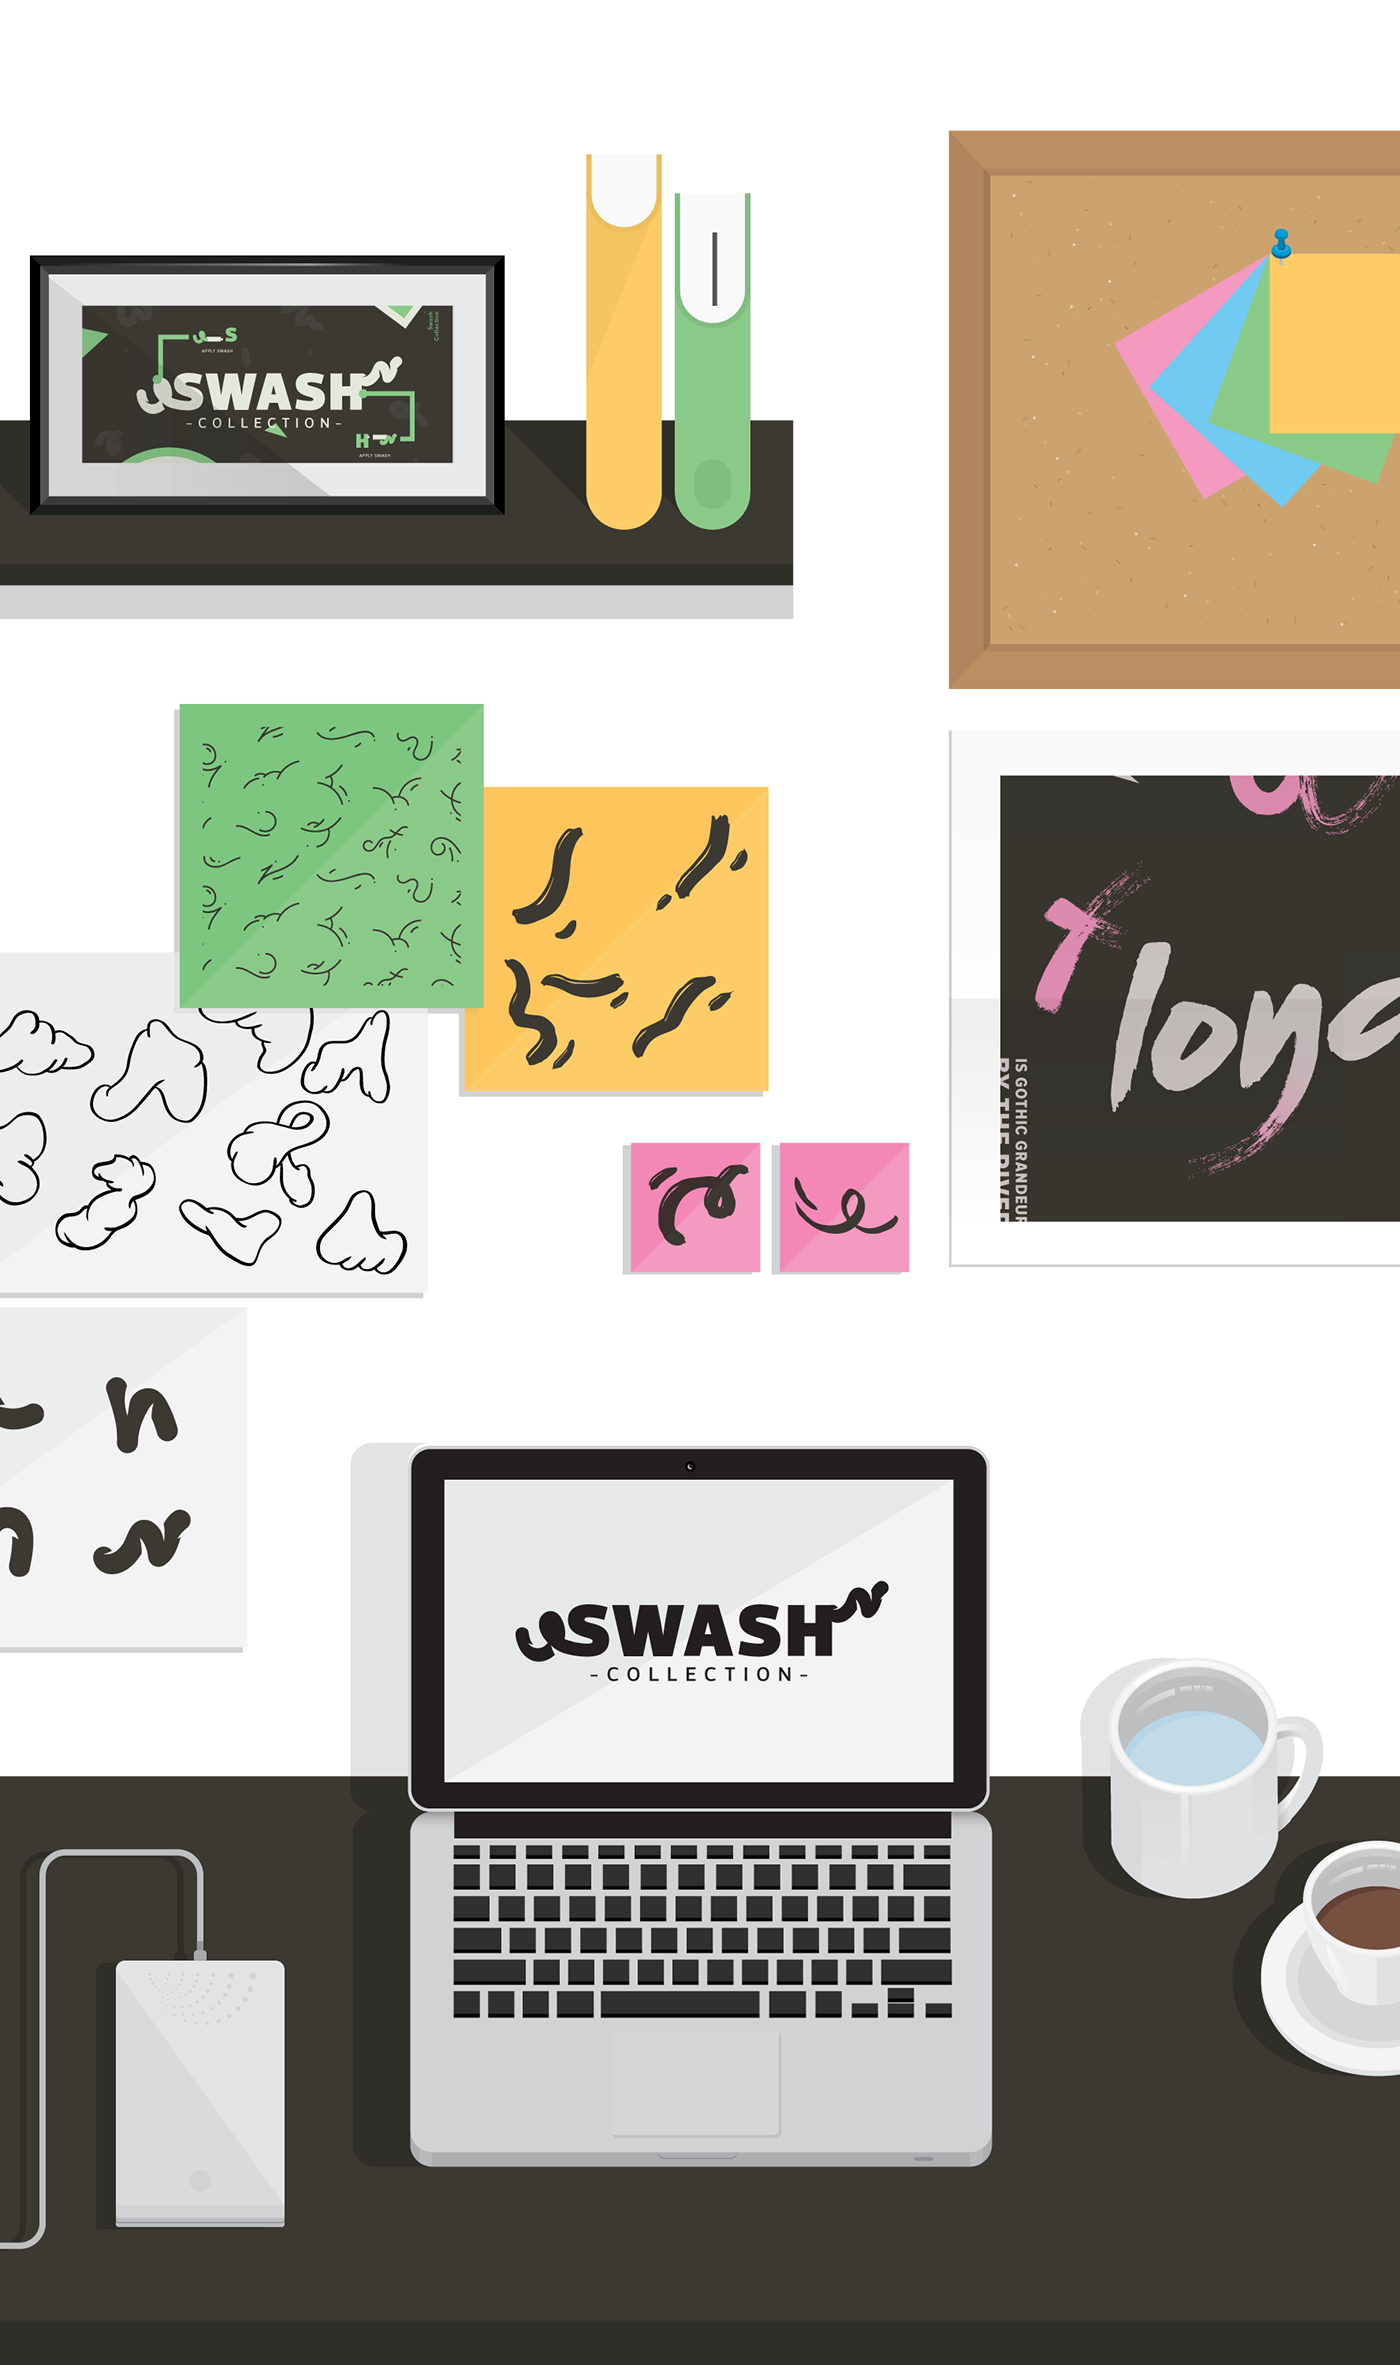 Swashes vector illustrator. The swash collection on